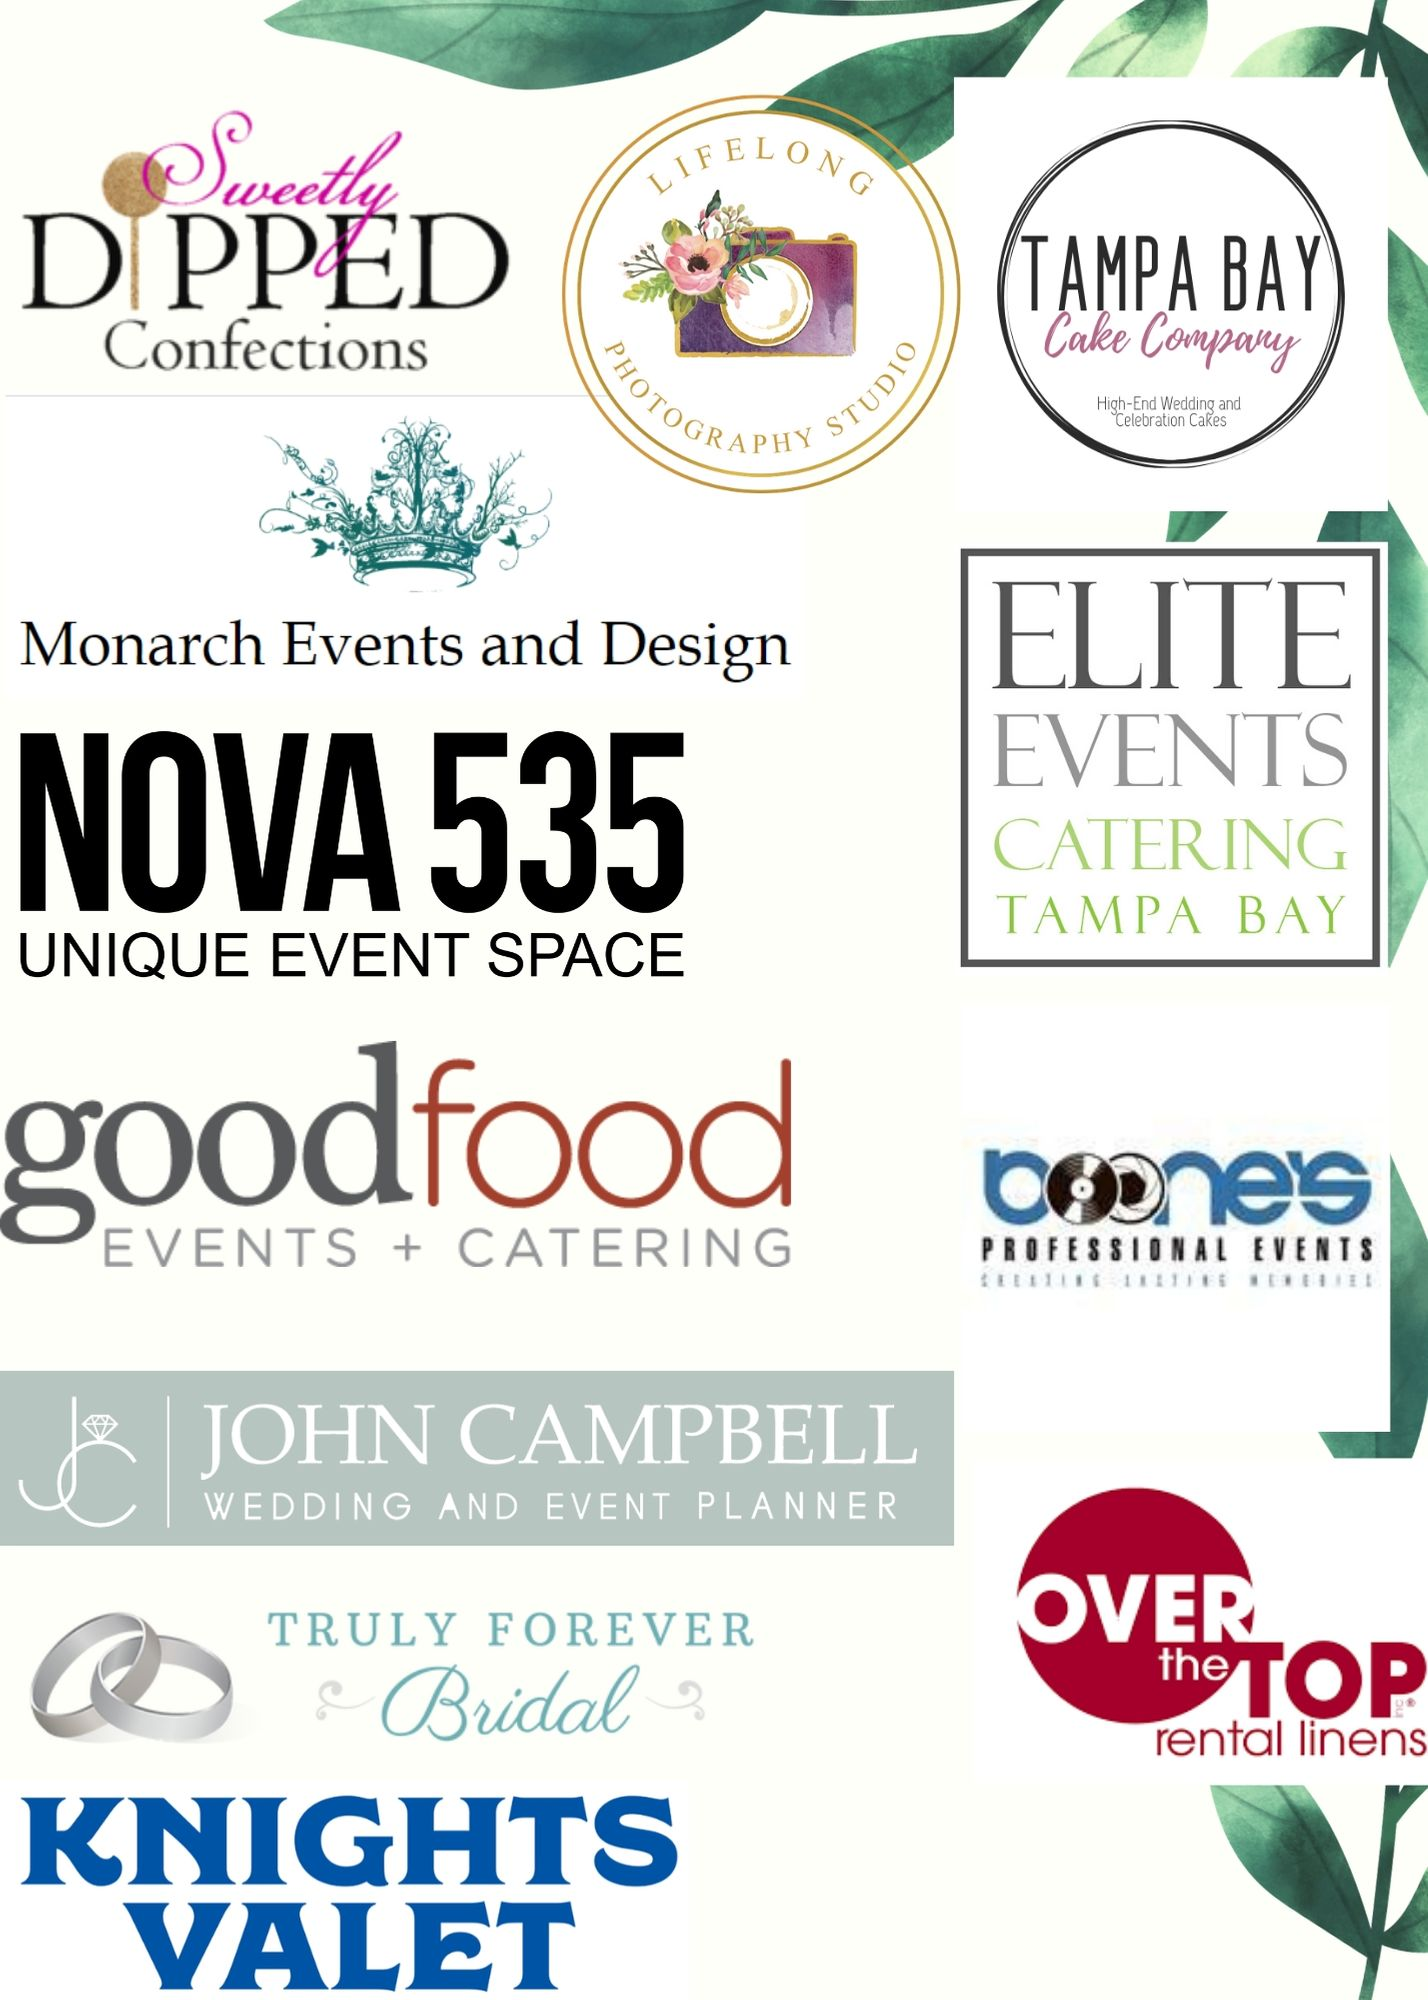 2020 03-12 ACE MMTB and NACE at venue NOVA 535 for 2020 Wedding Industry